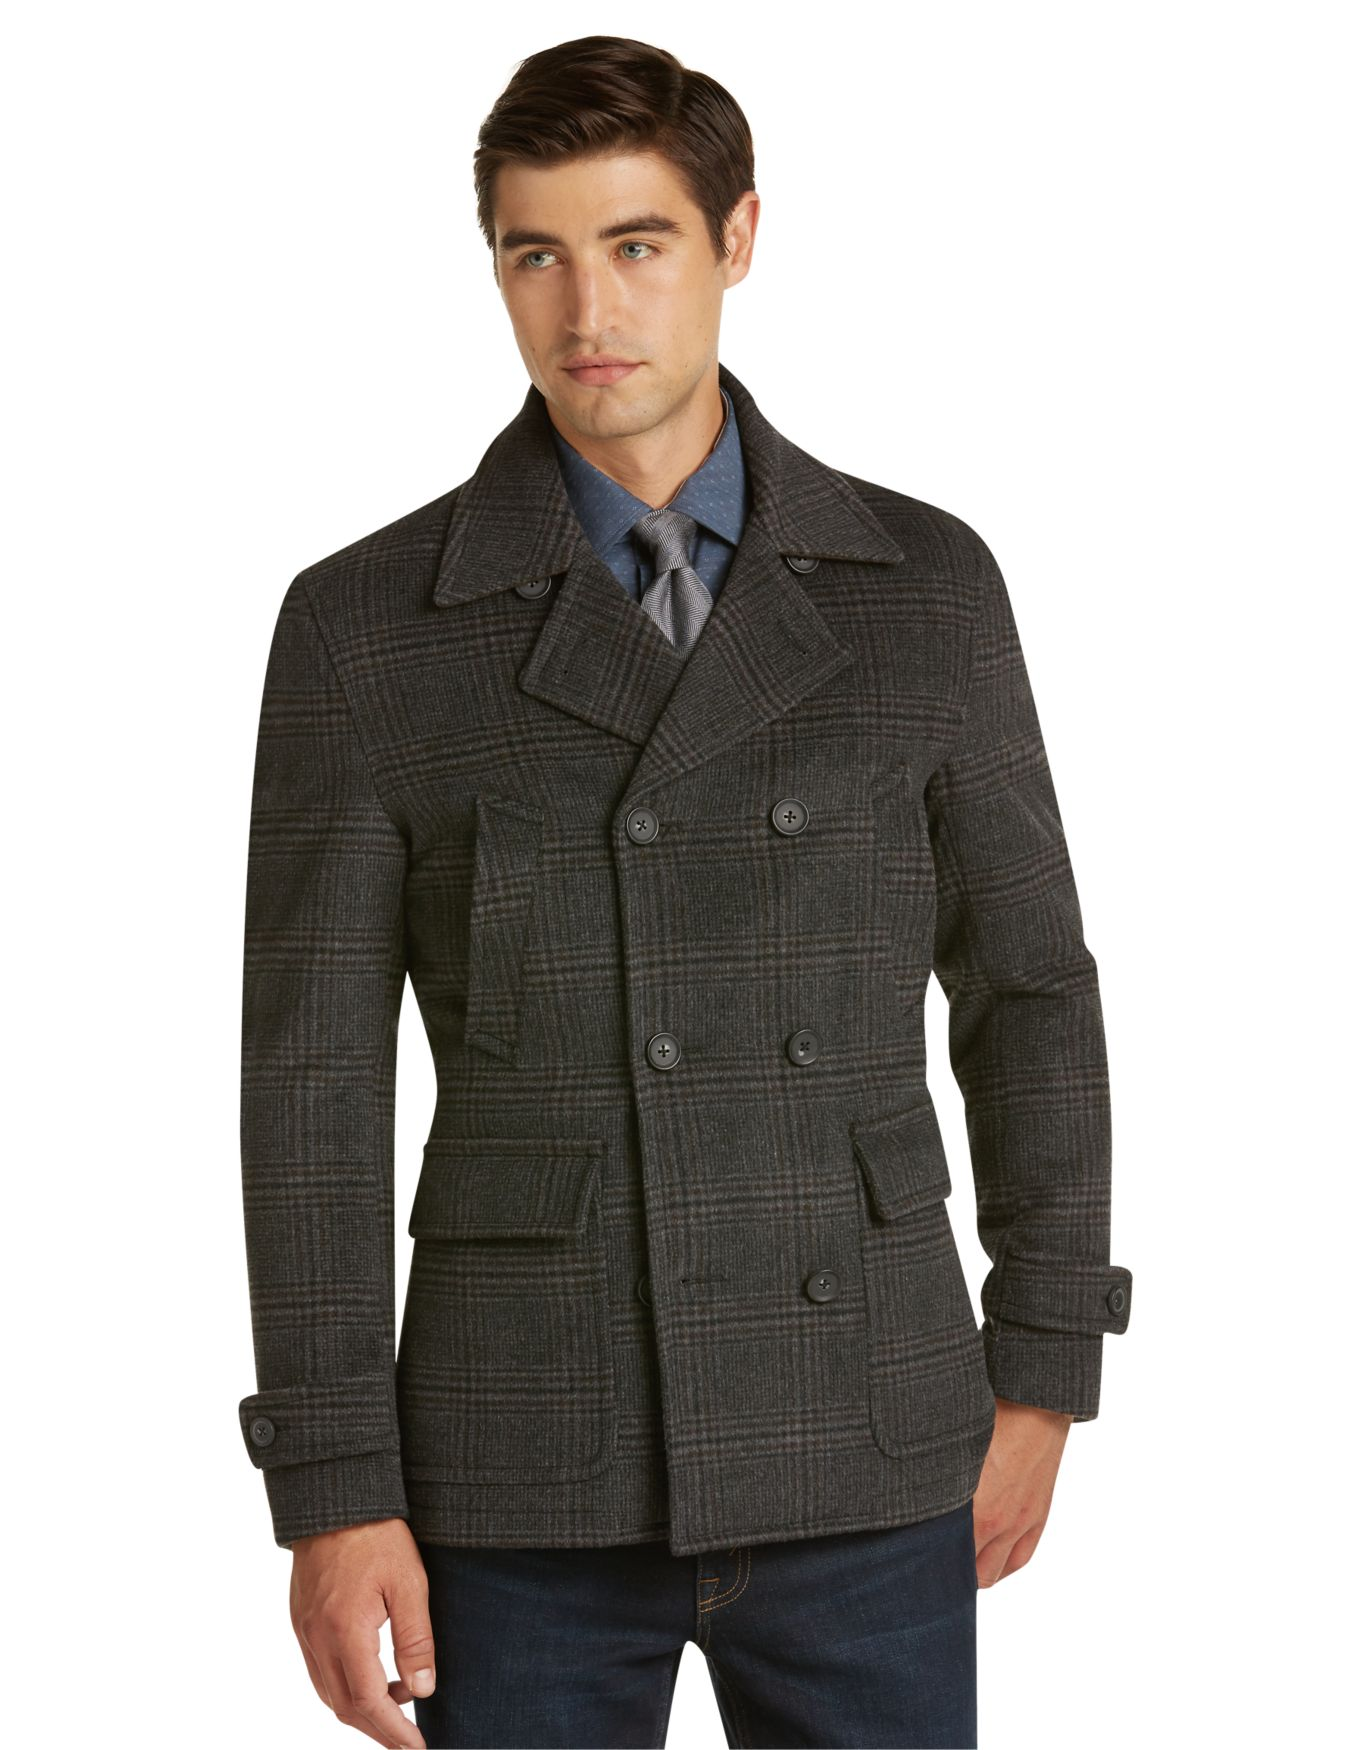 1905 Collection Traditional Fit Plaid Peacoat - Big & Tall ...